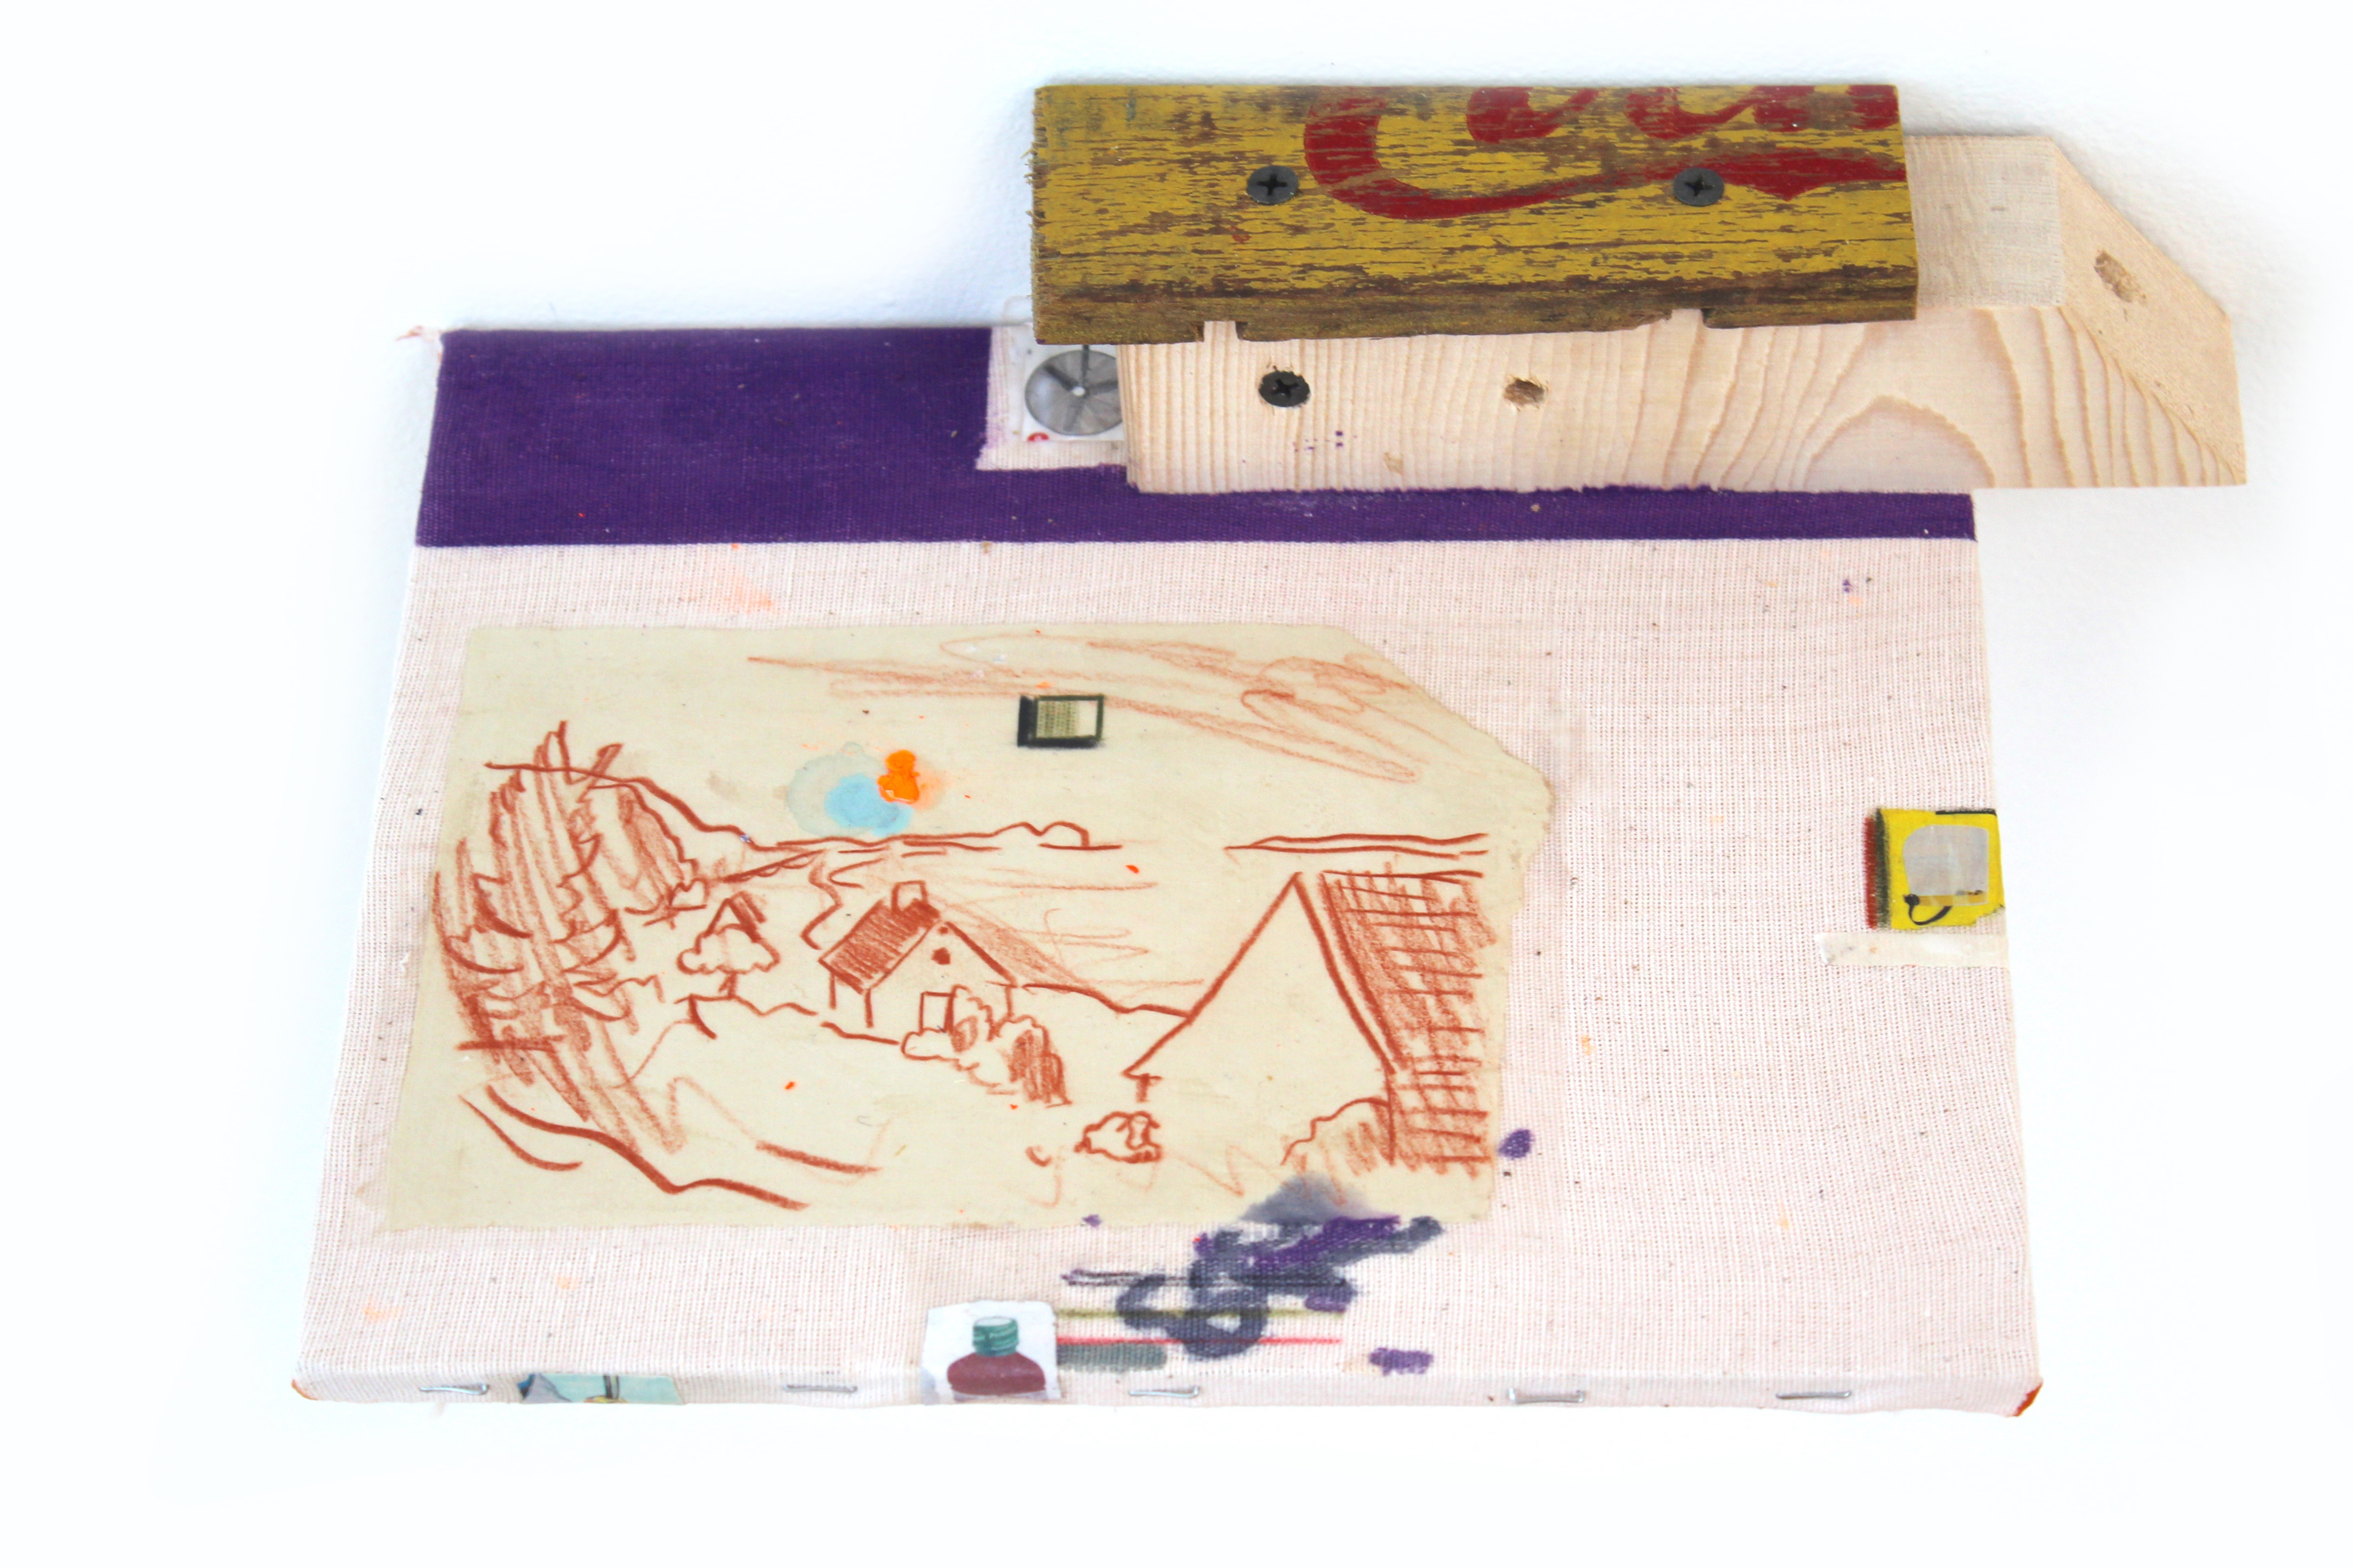 Kevin McNamee-Tweed.<em> Struck Shelf</em>, 2019. Ink and colored pencil on muslin mounted to wood with affixed pencil on paper drawing, newsprint, and found wood, 2 1/2 x 11 3/4 x 8 inches (6.4 x 29.8 x 20.3 cm)